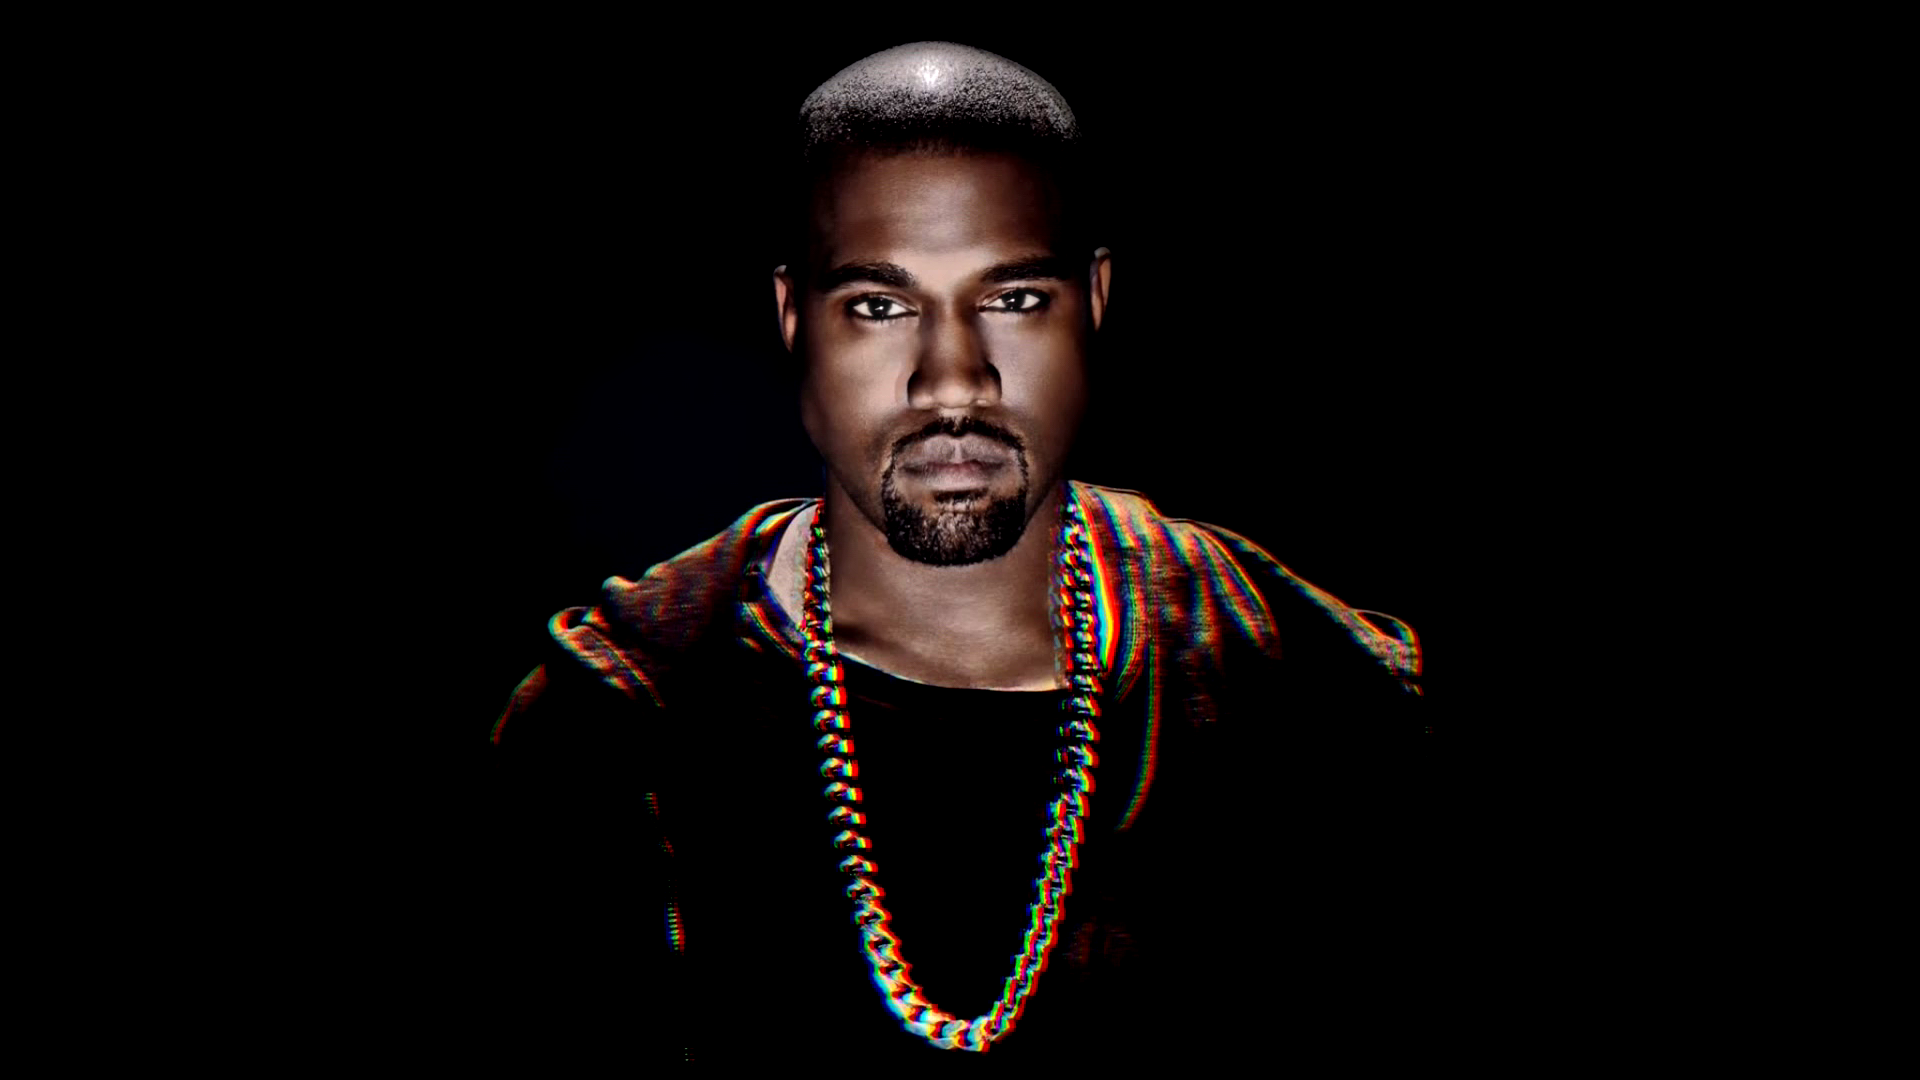 Kanye West photo Kanye-West-Full-HD-Wallpaper.png